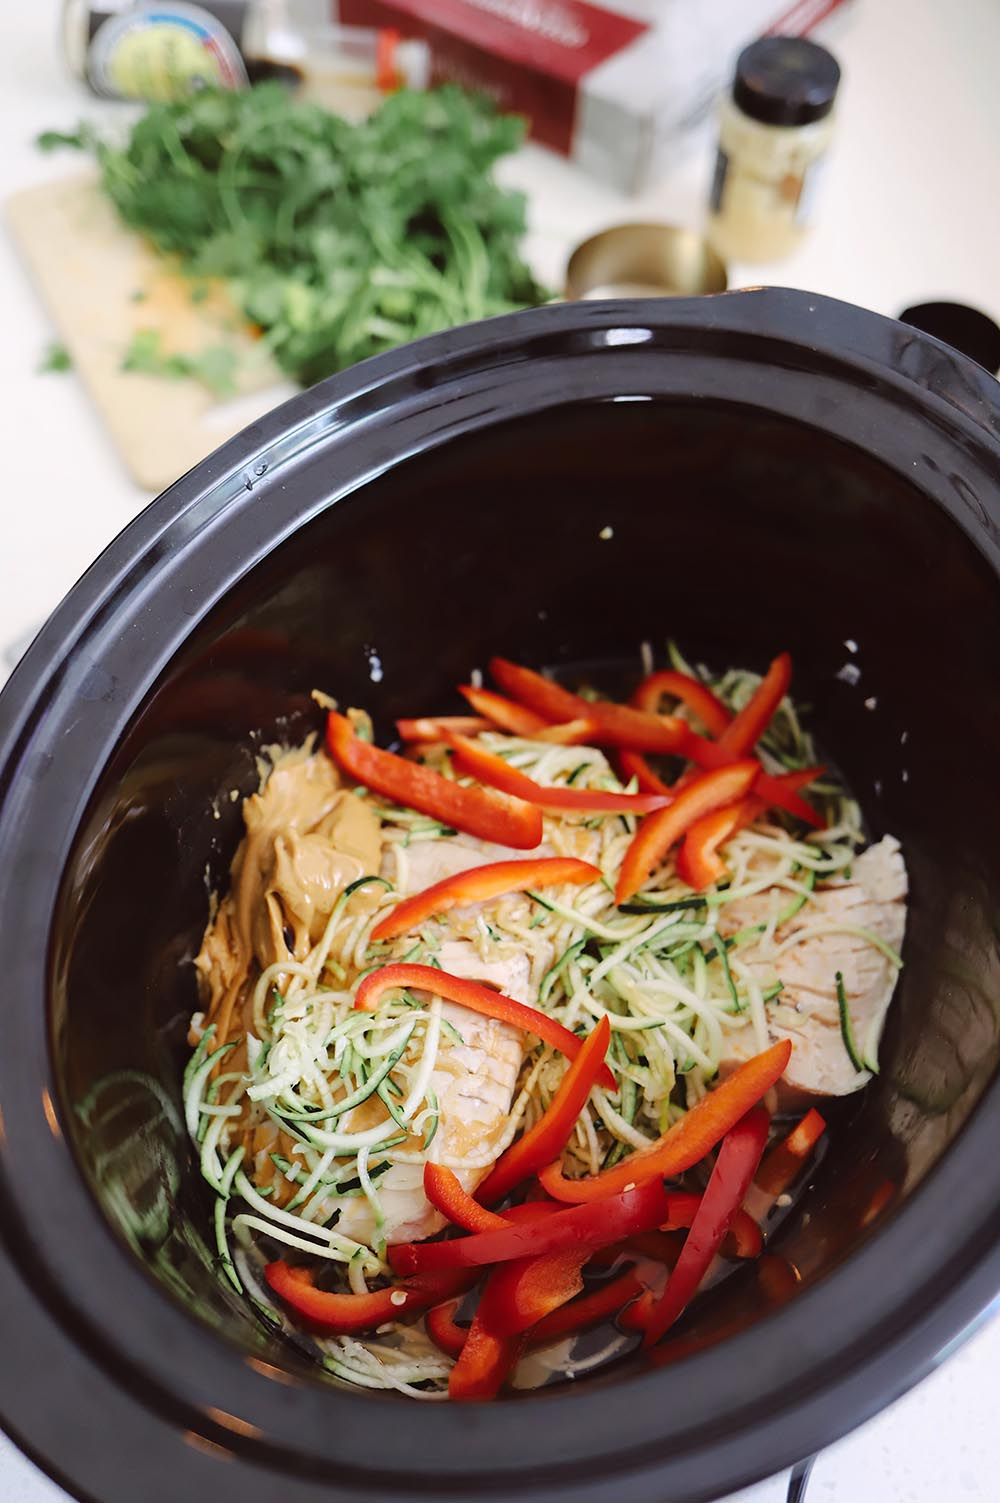 Slow Cooker Thai Chicken with Peanut Sauce recipe from Tabitha Blue of Fresh Mommy Blog   Slow Cooker Thai Chicken by popular Florida lifestyle blog, Fresh Mommy Blog: image of chicken, peanut butter, red peppers, and zucchini in a crockpot.